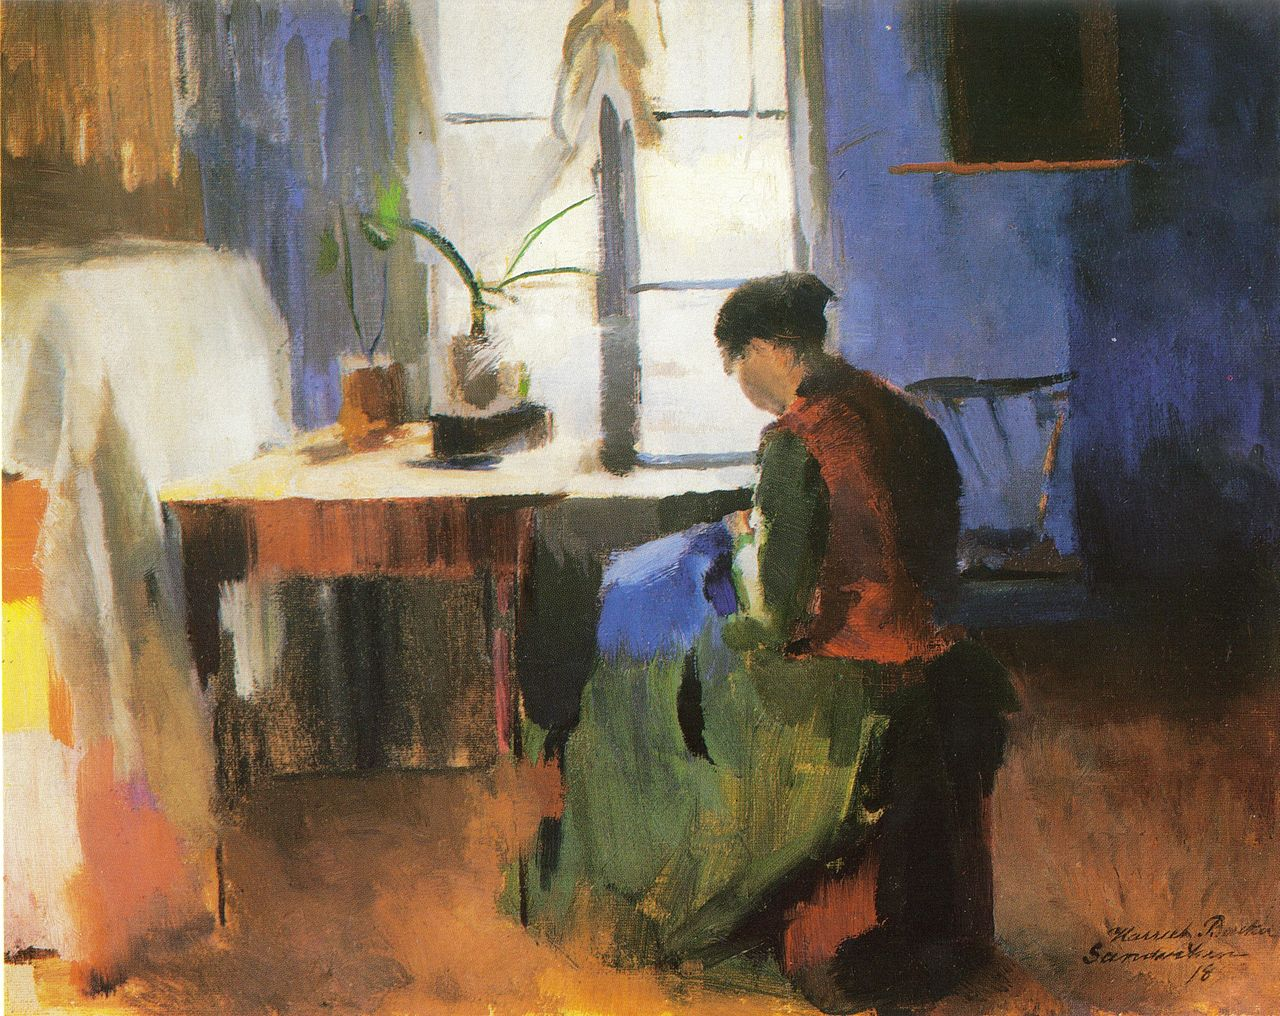 Harriet Backer, Sewing Woman (1890), oil on canvas (via Wikimedia)